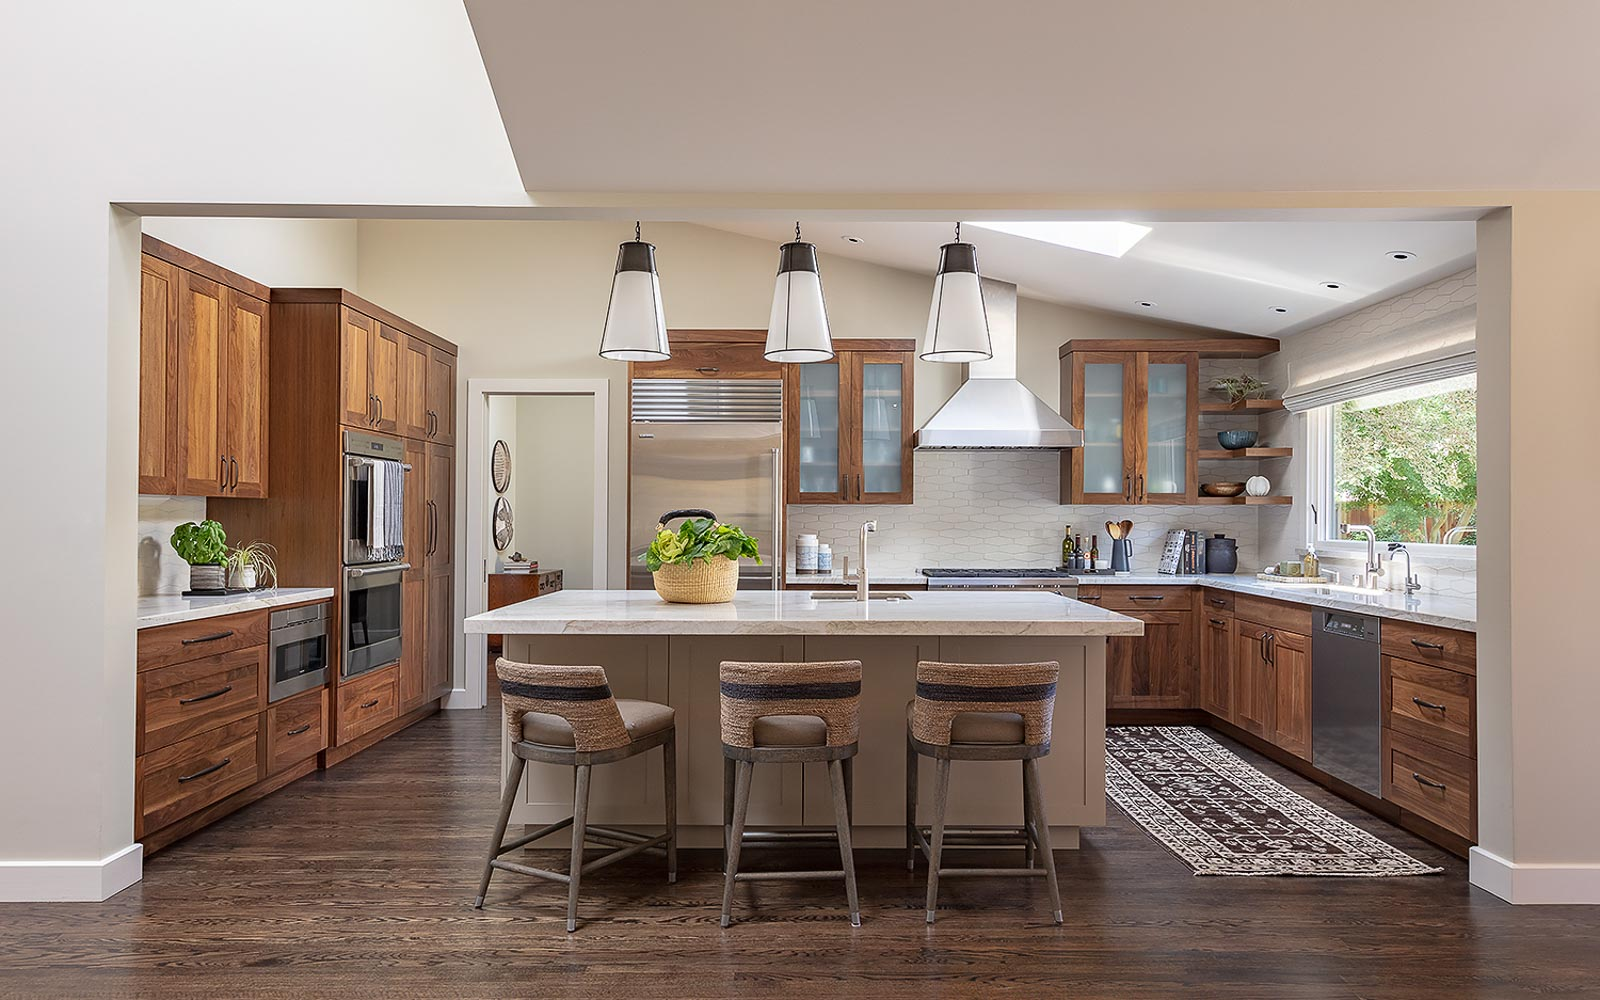 Kitchen remodel and interior design, ranch-style home, Lafayette, by LMB Interiors